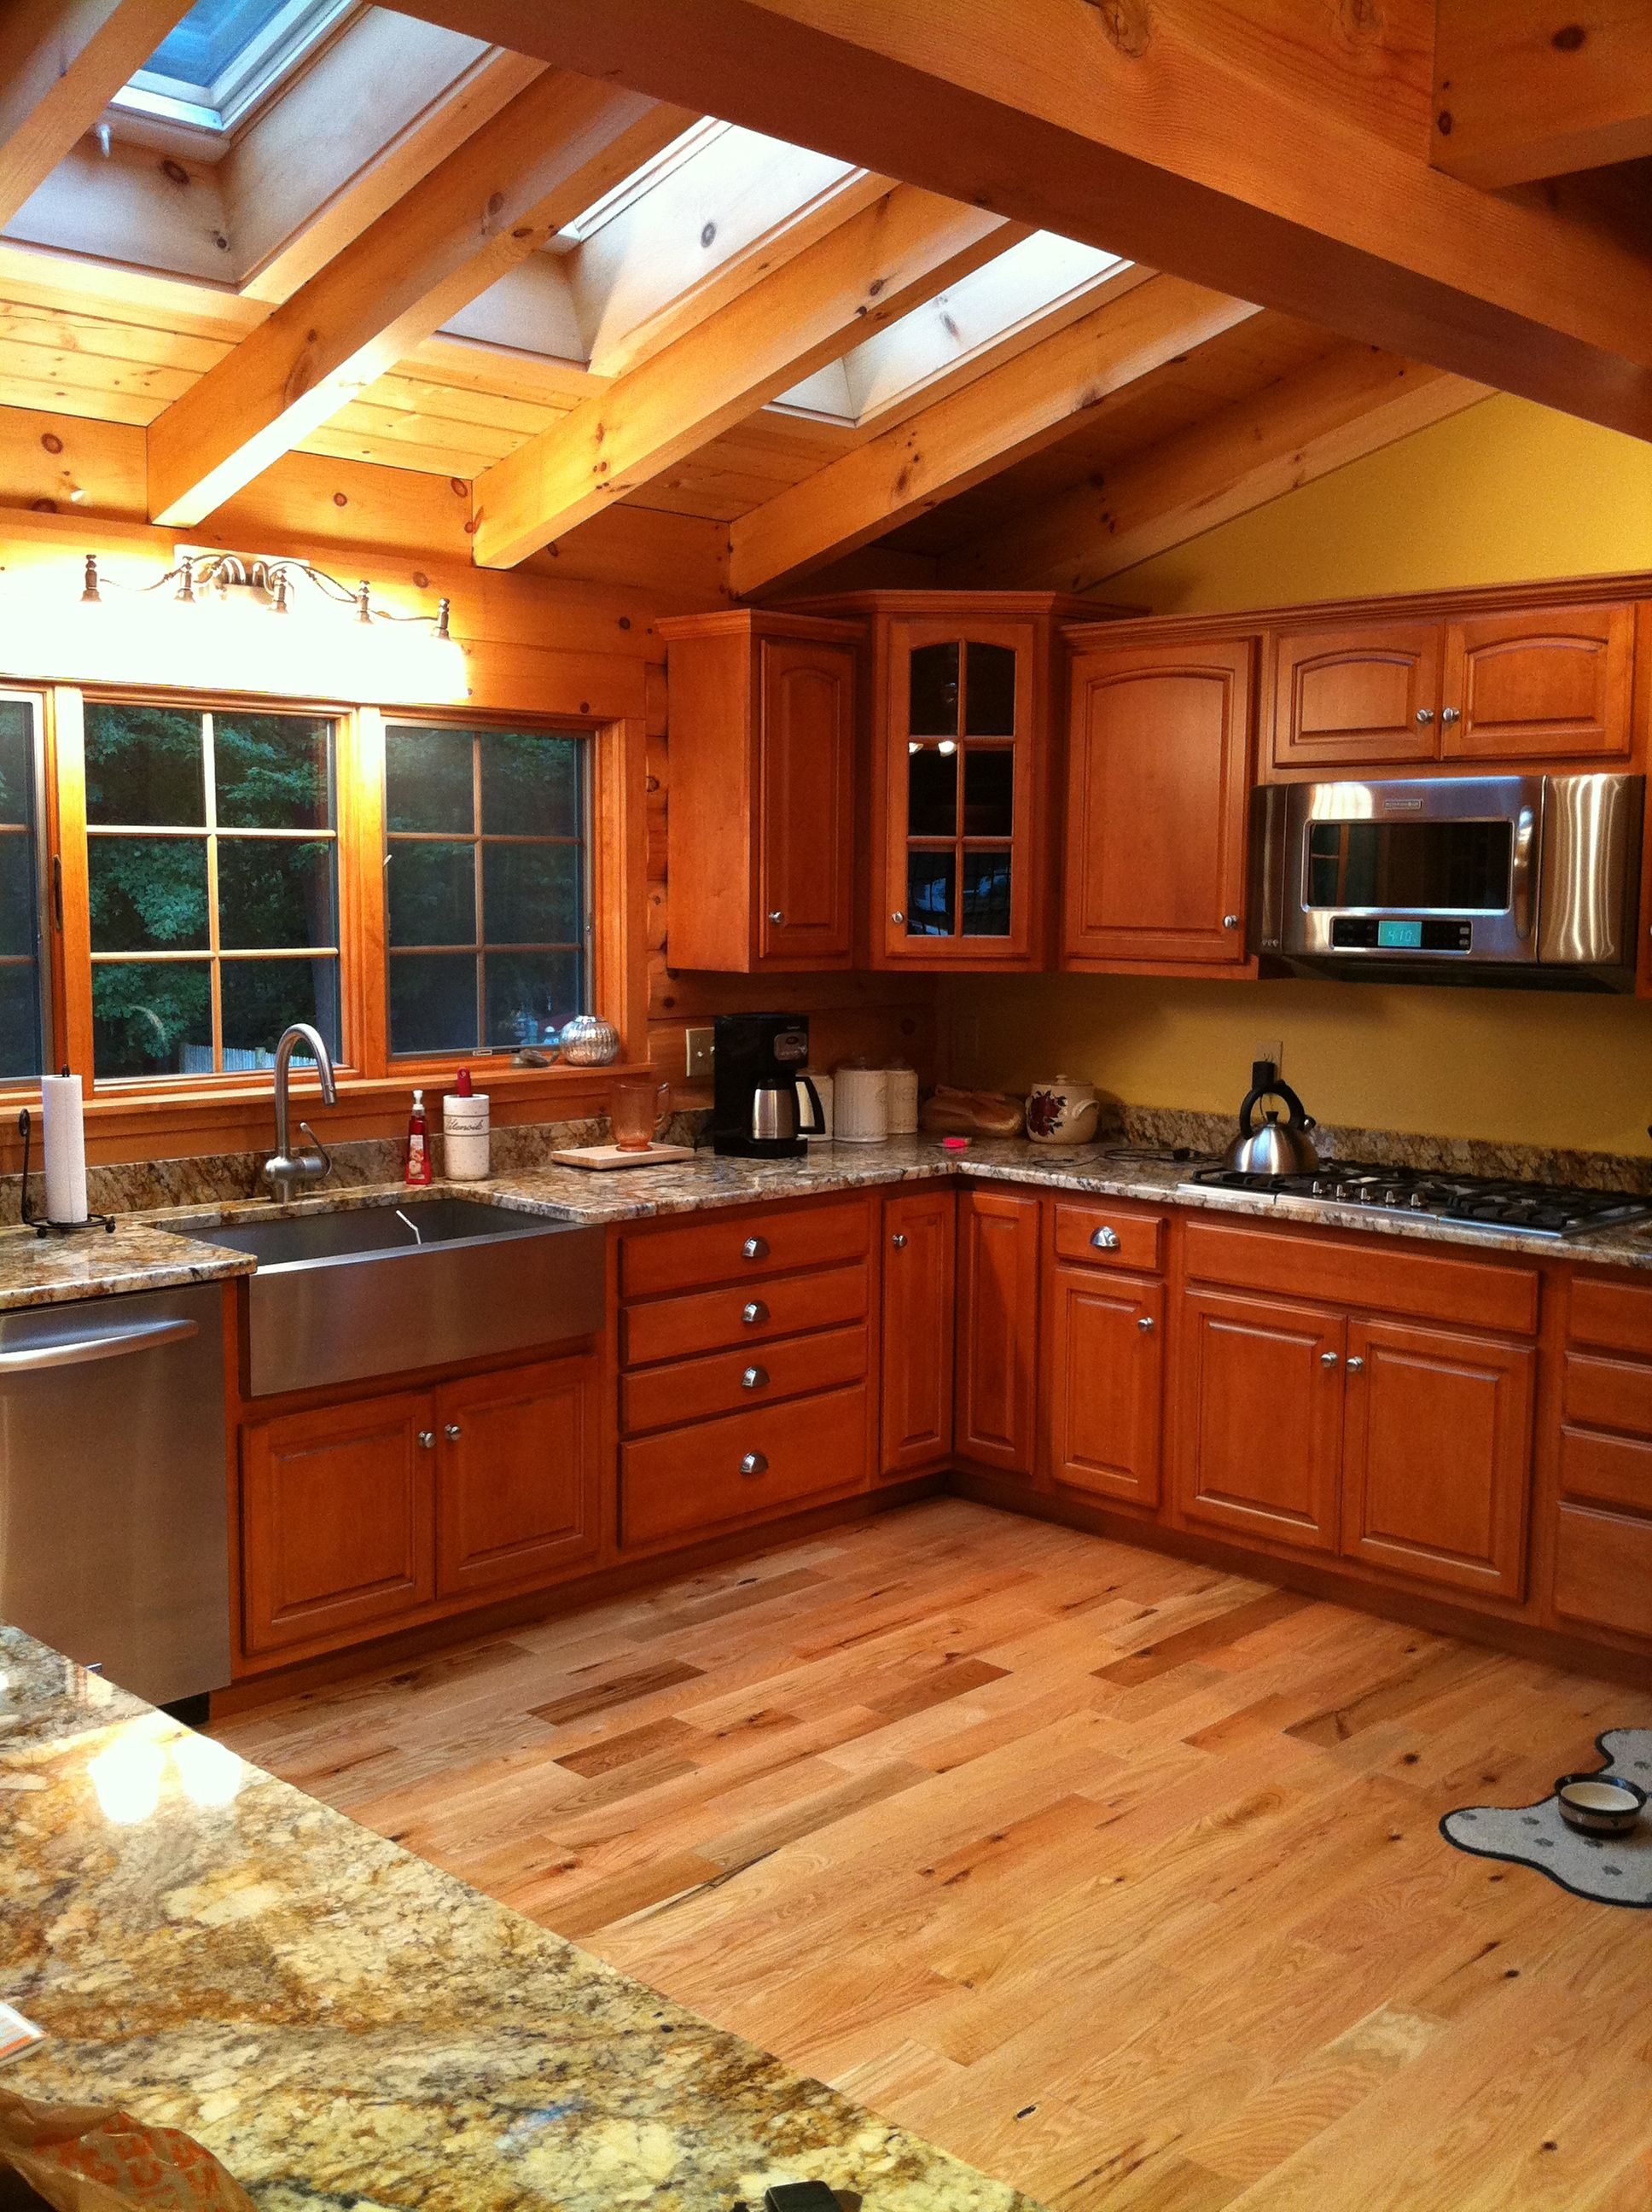 Dynasty by Omega kitchen cabinets from Ragonese Kitchen ...